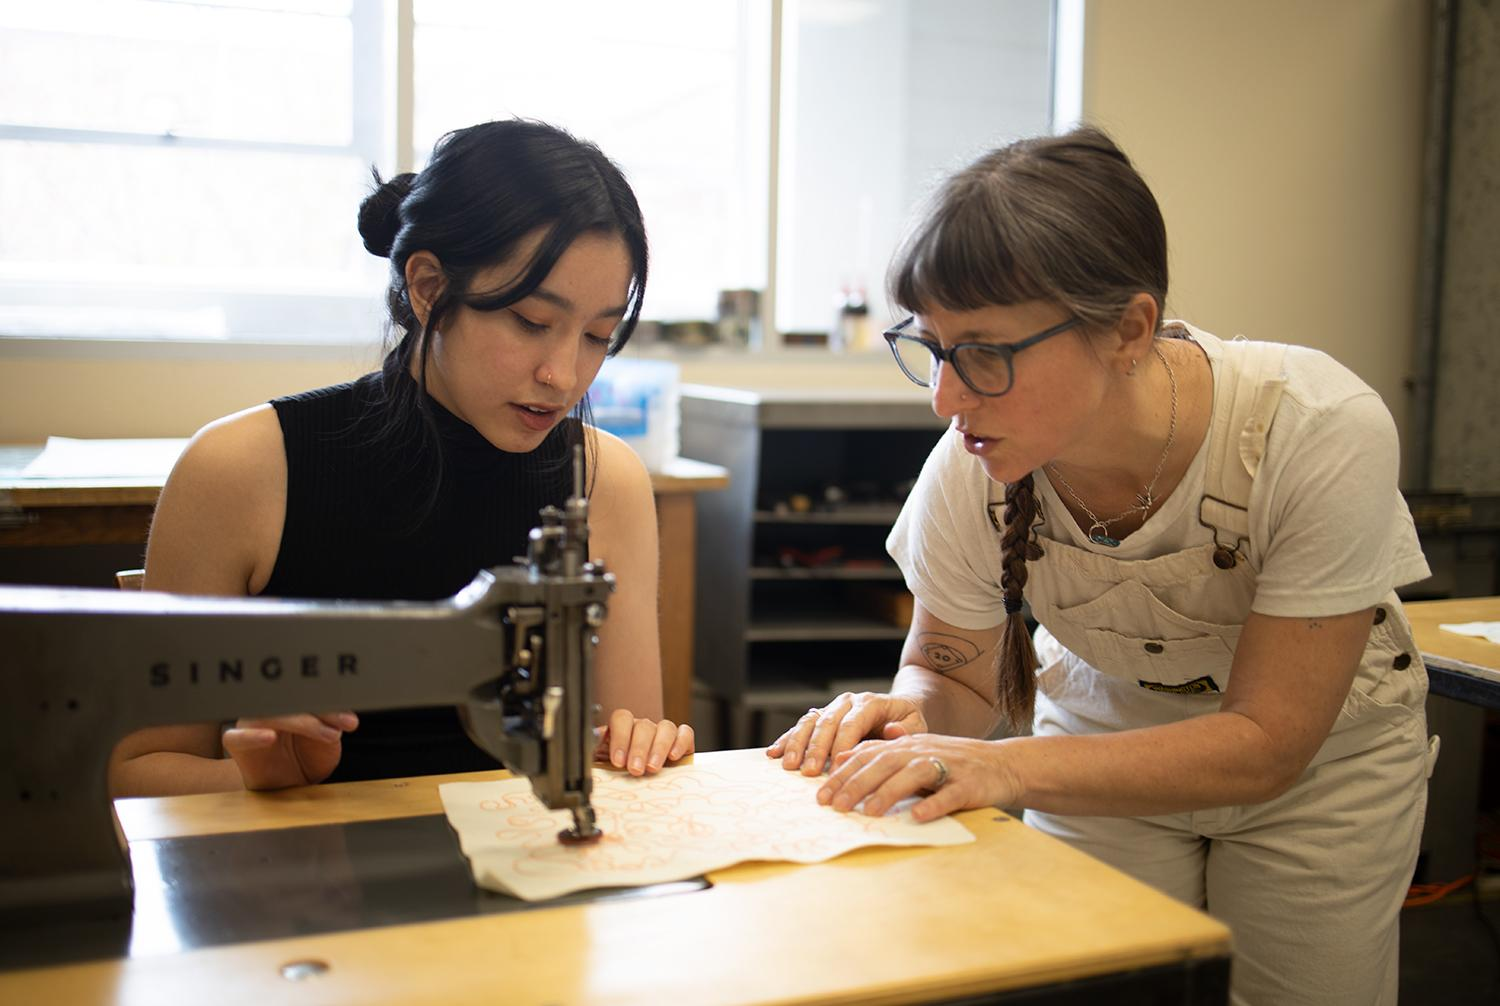 Kathie Sever teaches Design junior Hue Minh Cao how to chain stitch during the workshop